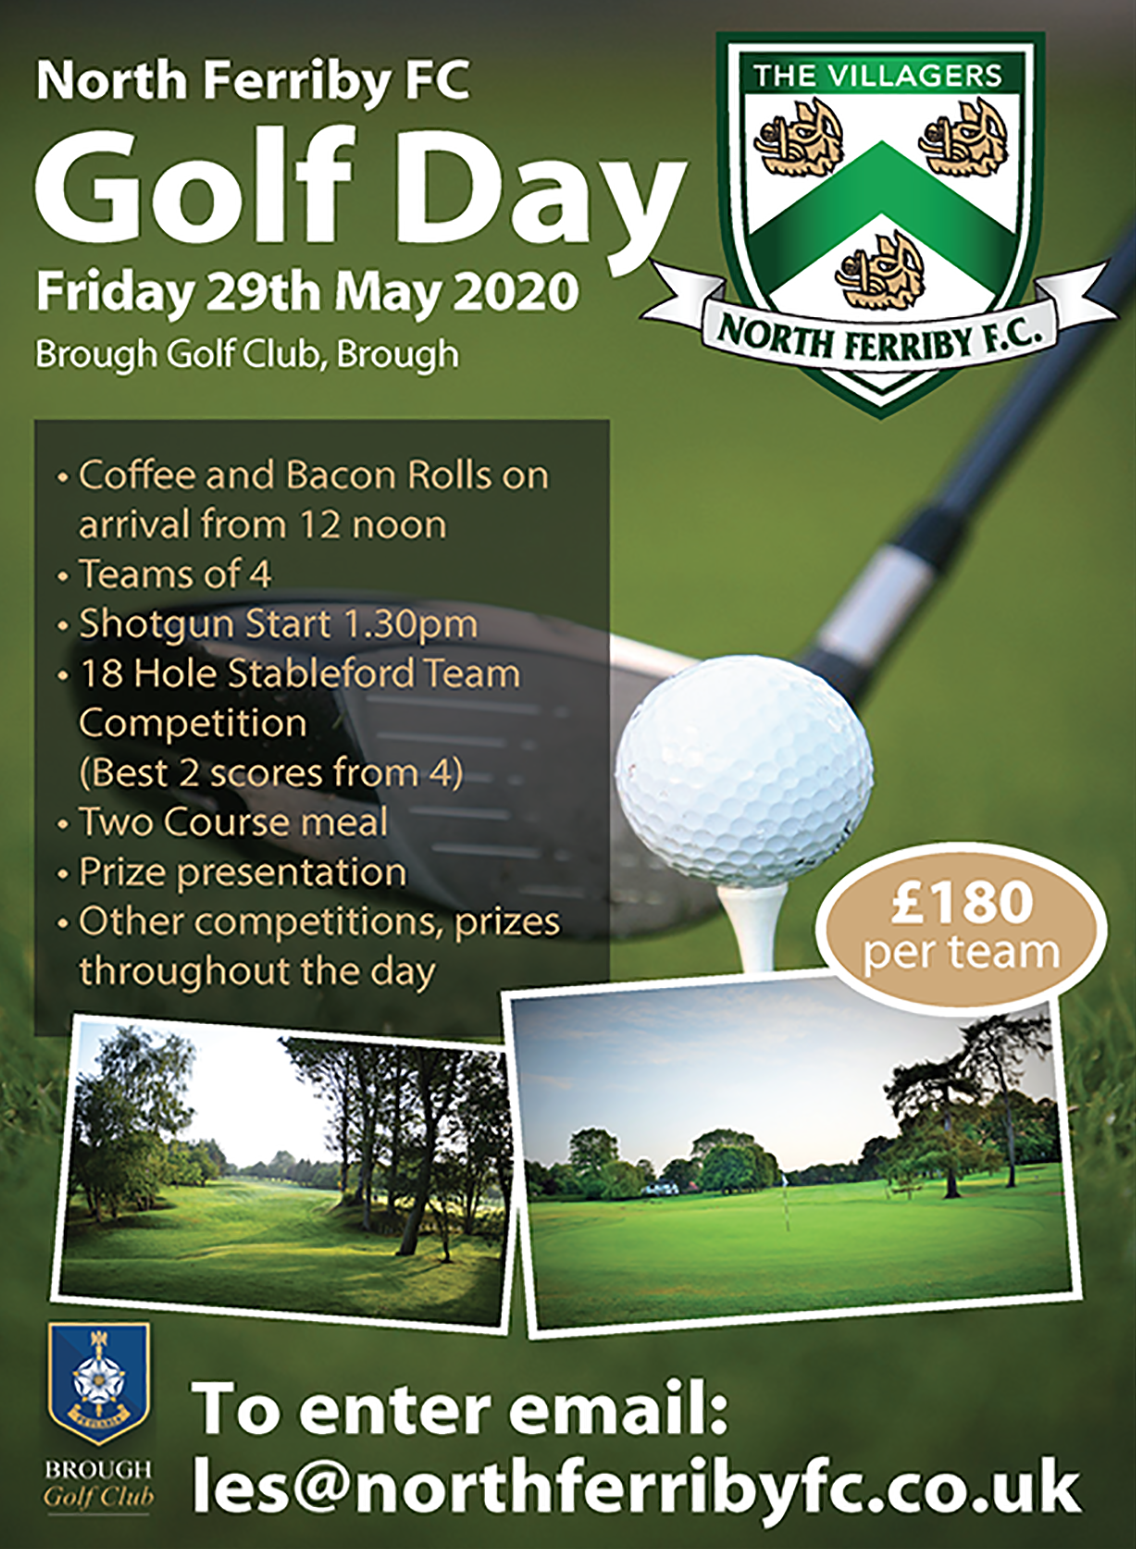 North Ferriby FC Golf Day 2020